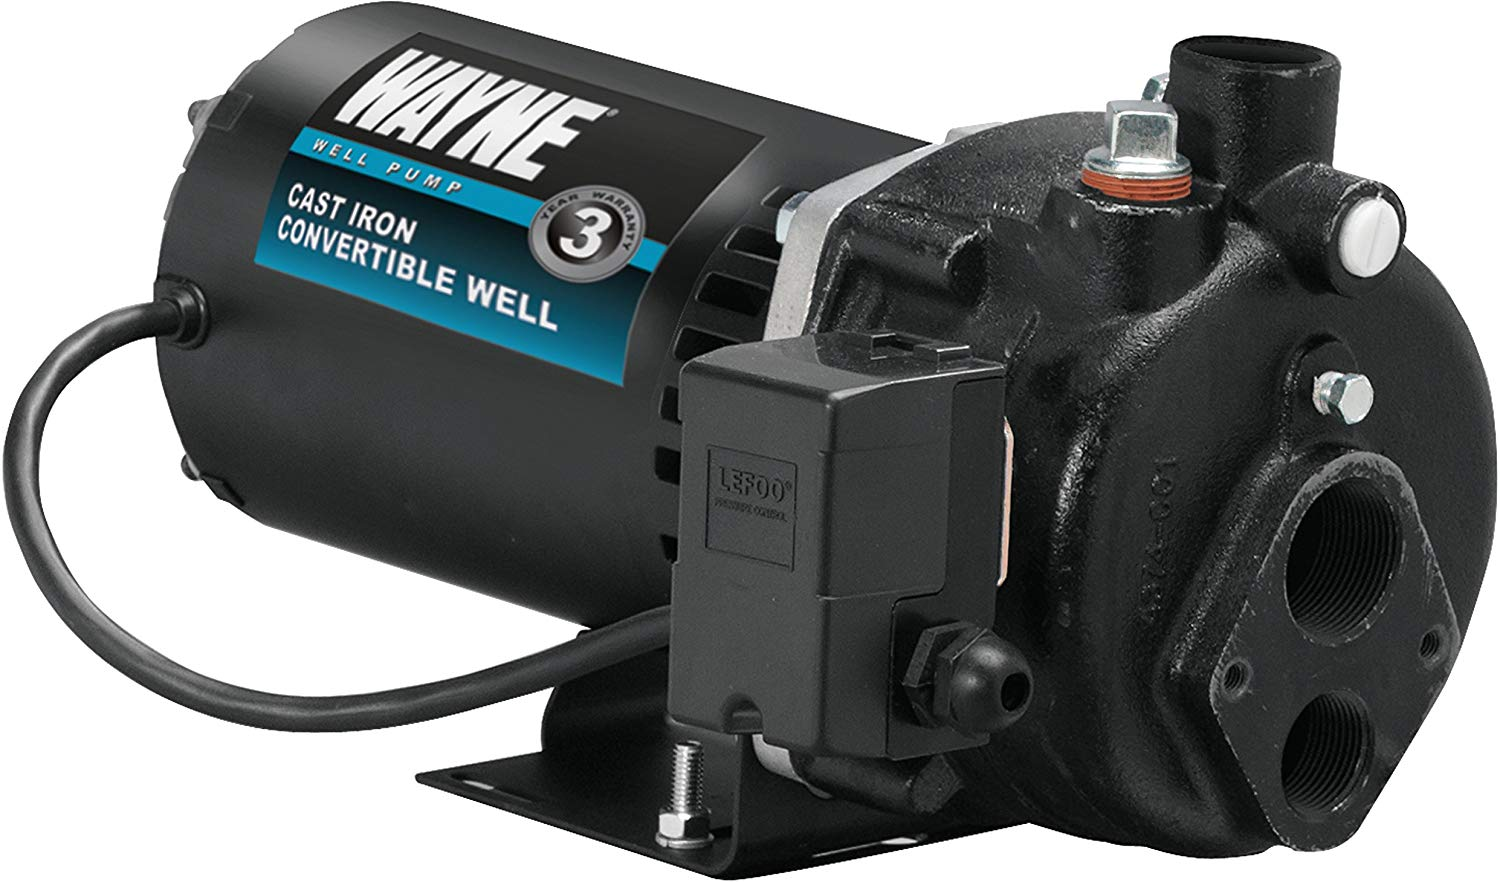 Wayne CWS75 Convertible Well Jet Pump, 3/4-Horsepower.